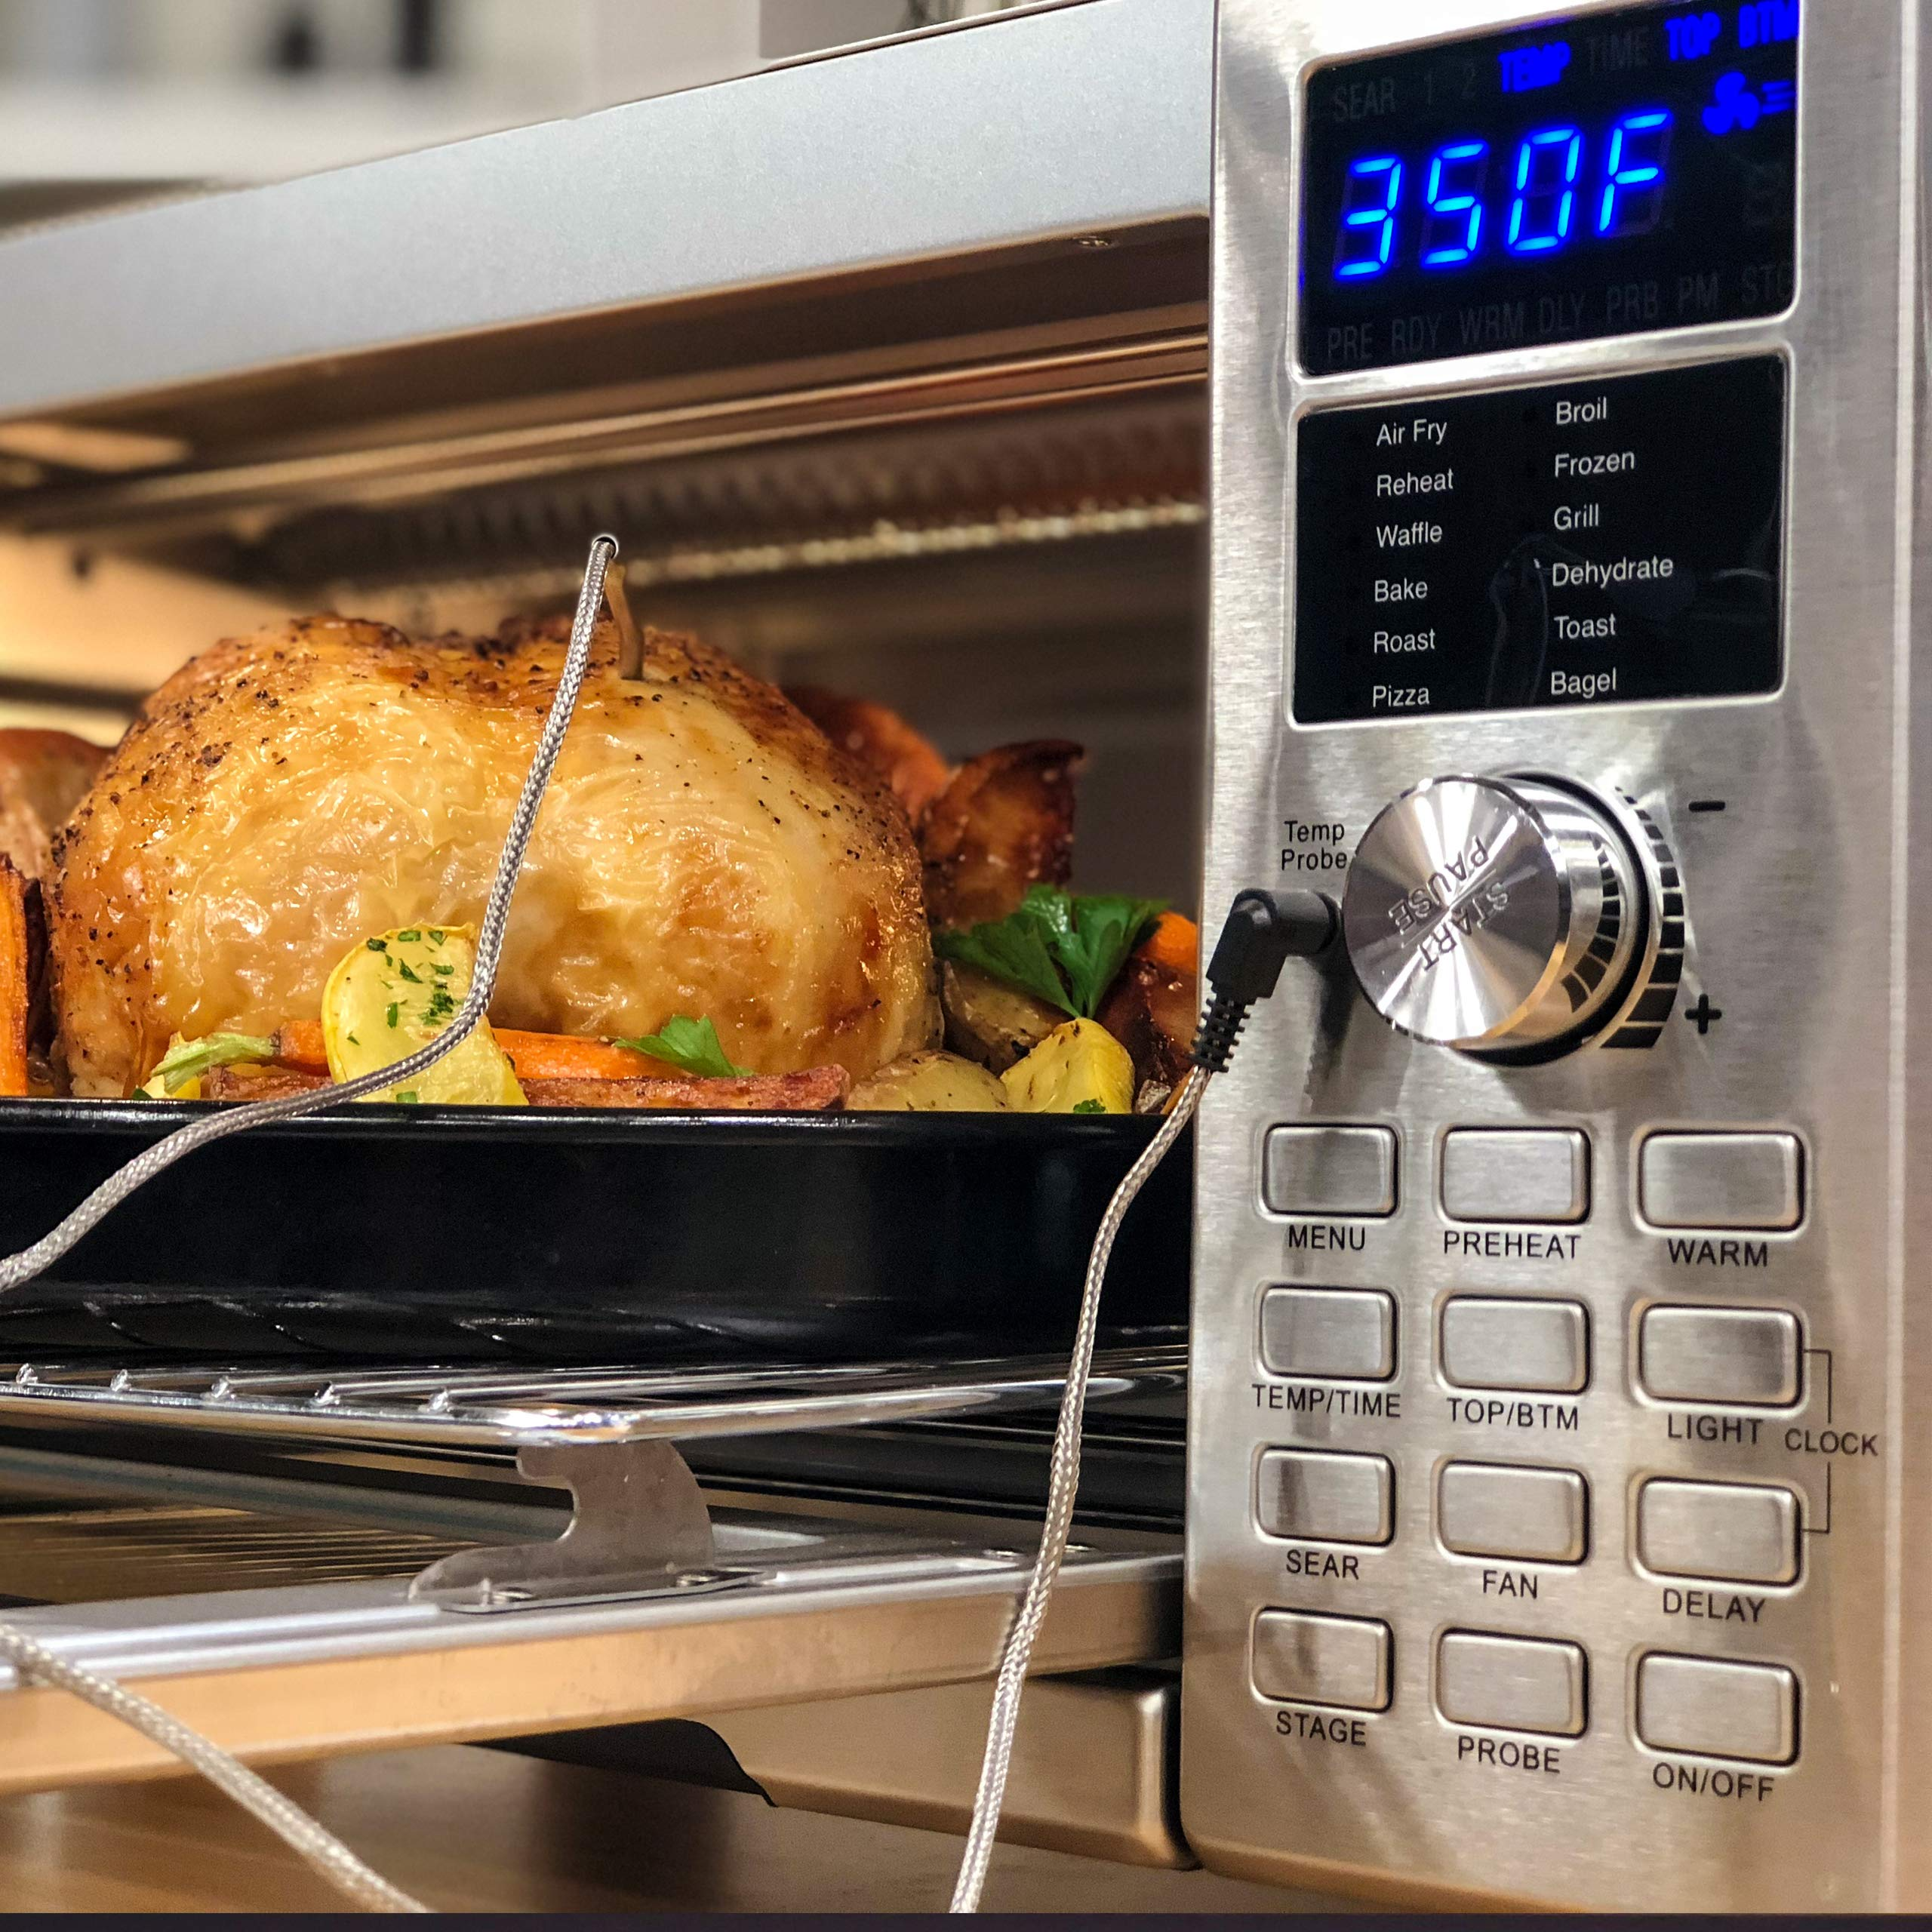 NUWAVE BRAVO XL 1800-watt Air Fry Convection Oven with Flavor Infusion (FIT) Technology with Integrated Temperature Probe for Perfect Results; 12 Pre-Programmed Presets; 3 Fan Speeds; 5-Quartz Heating Elements